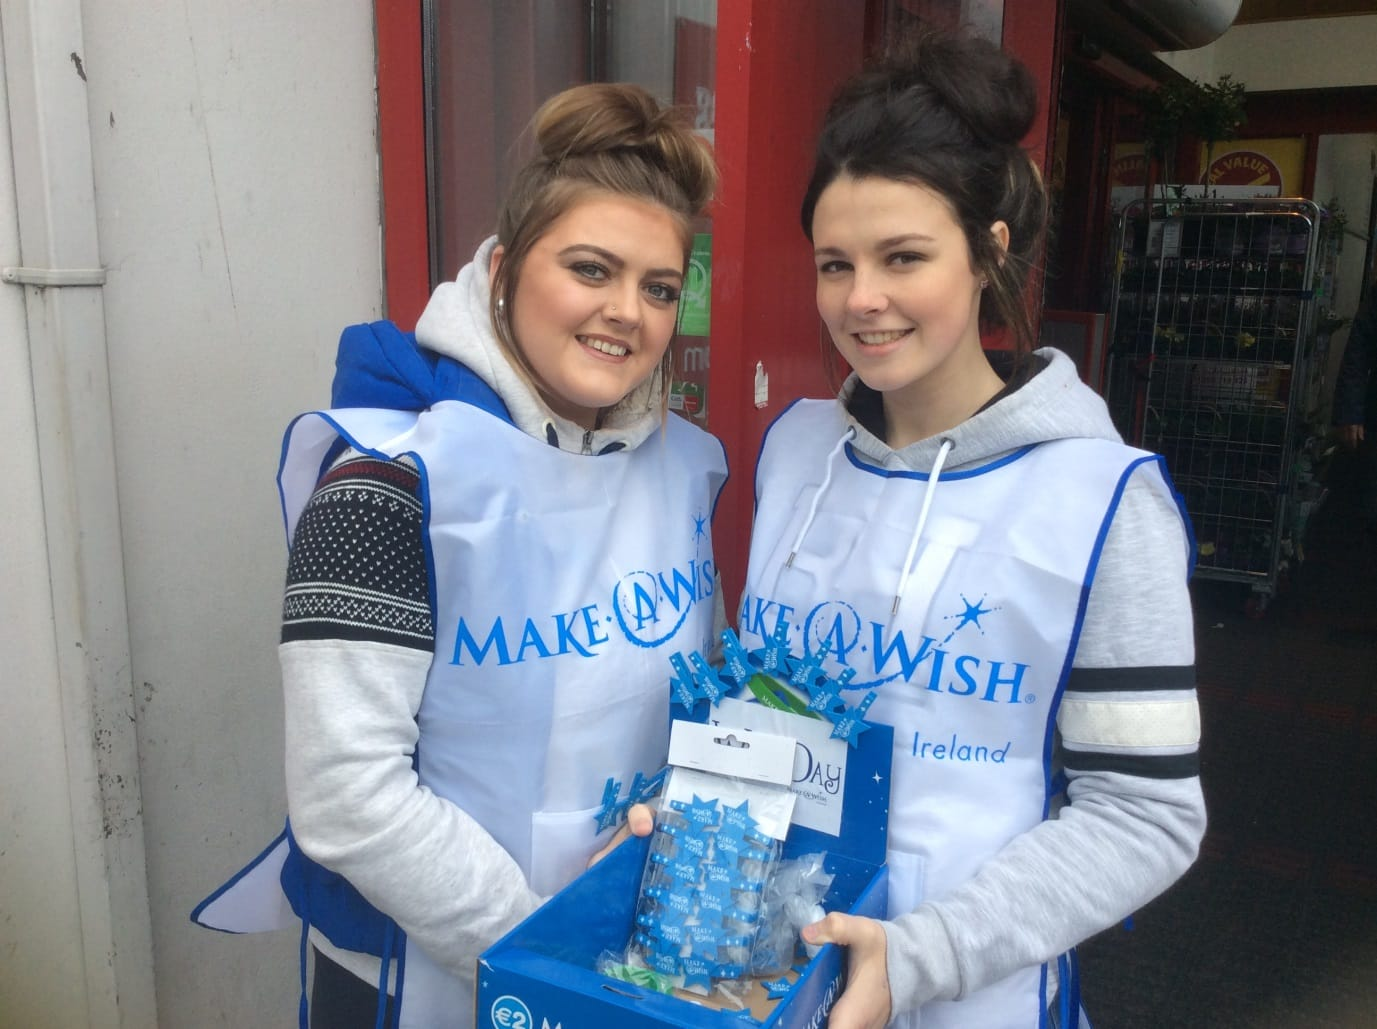 2016 April: Desmond College students Nikita Harnett and Leah Kelly, collecting in Newcastle West Town Center for Make a Wish Foundation